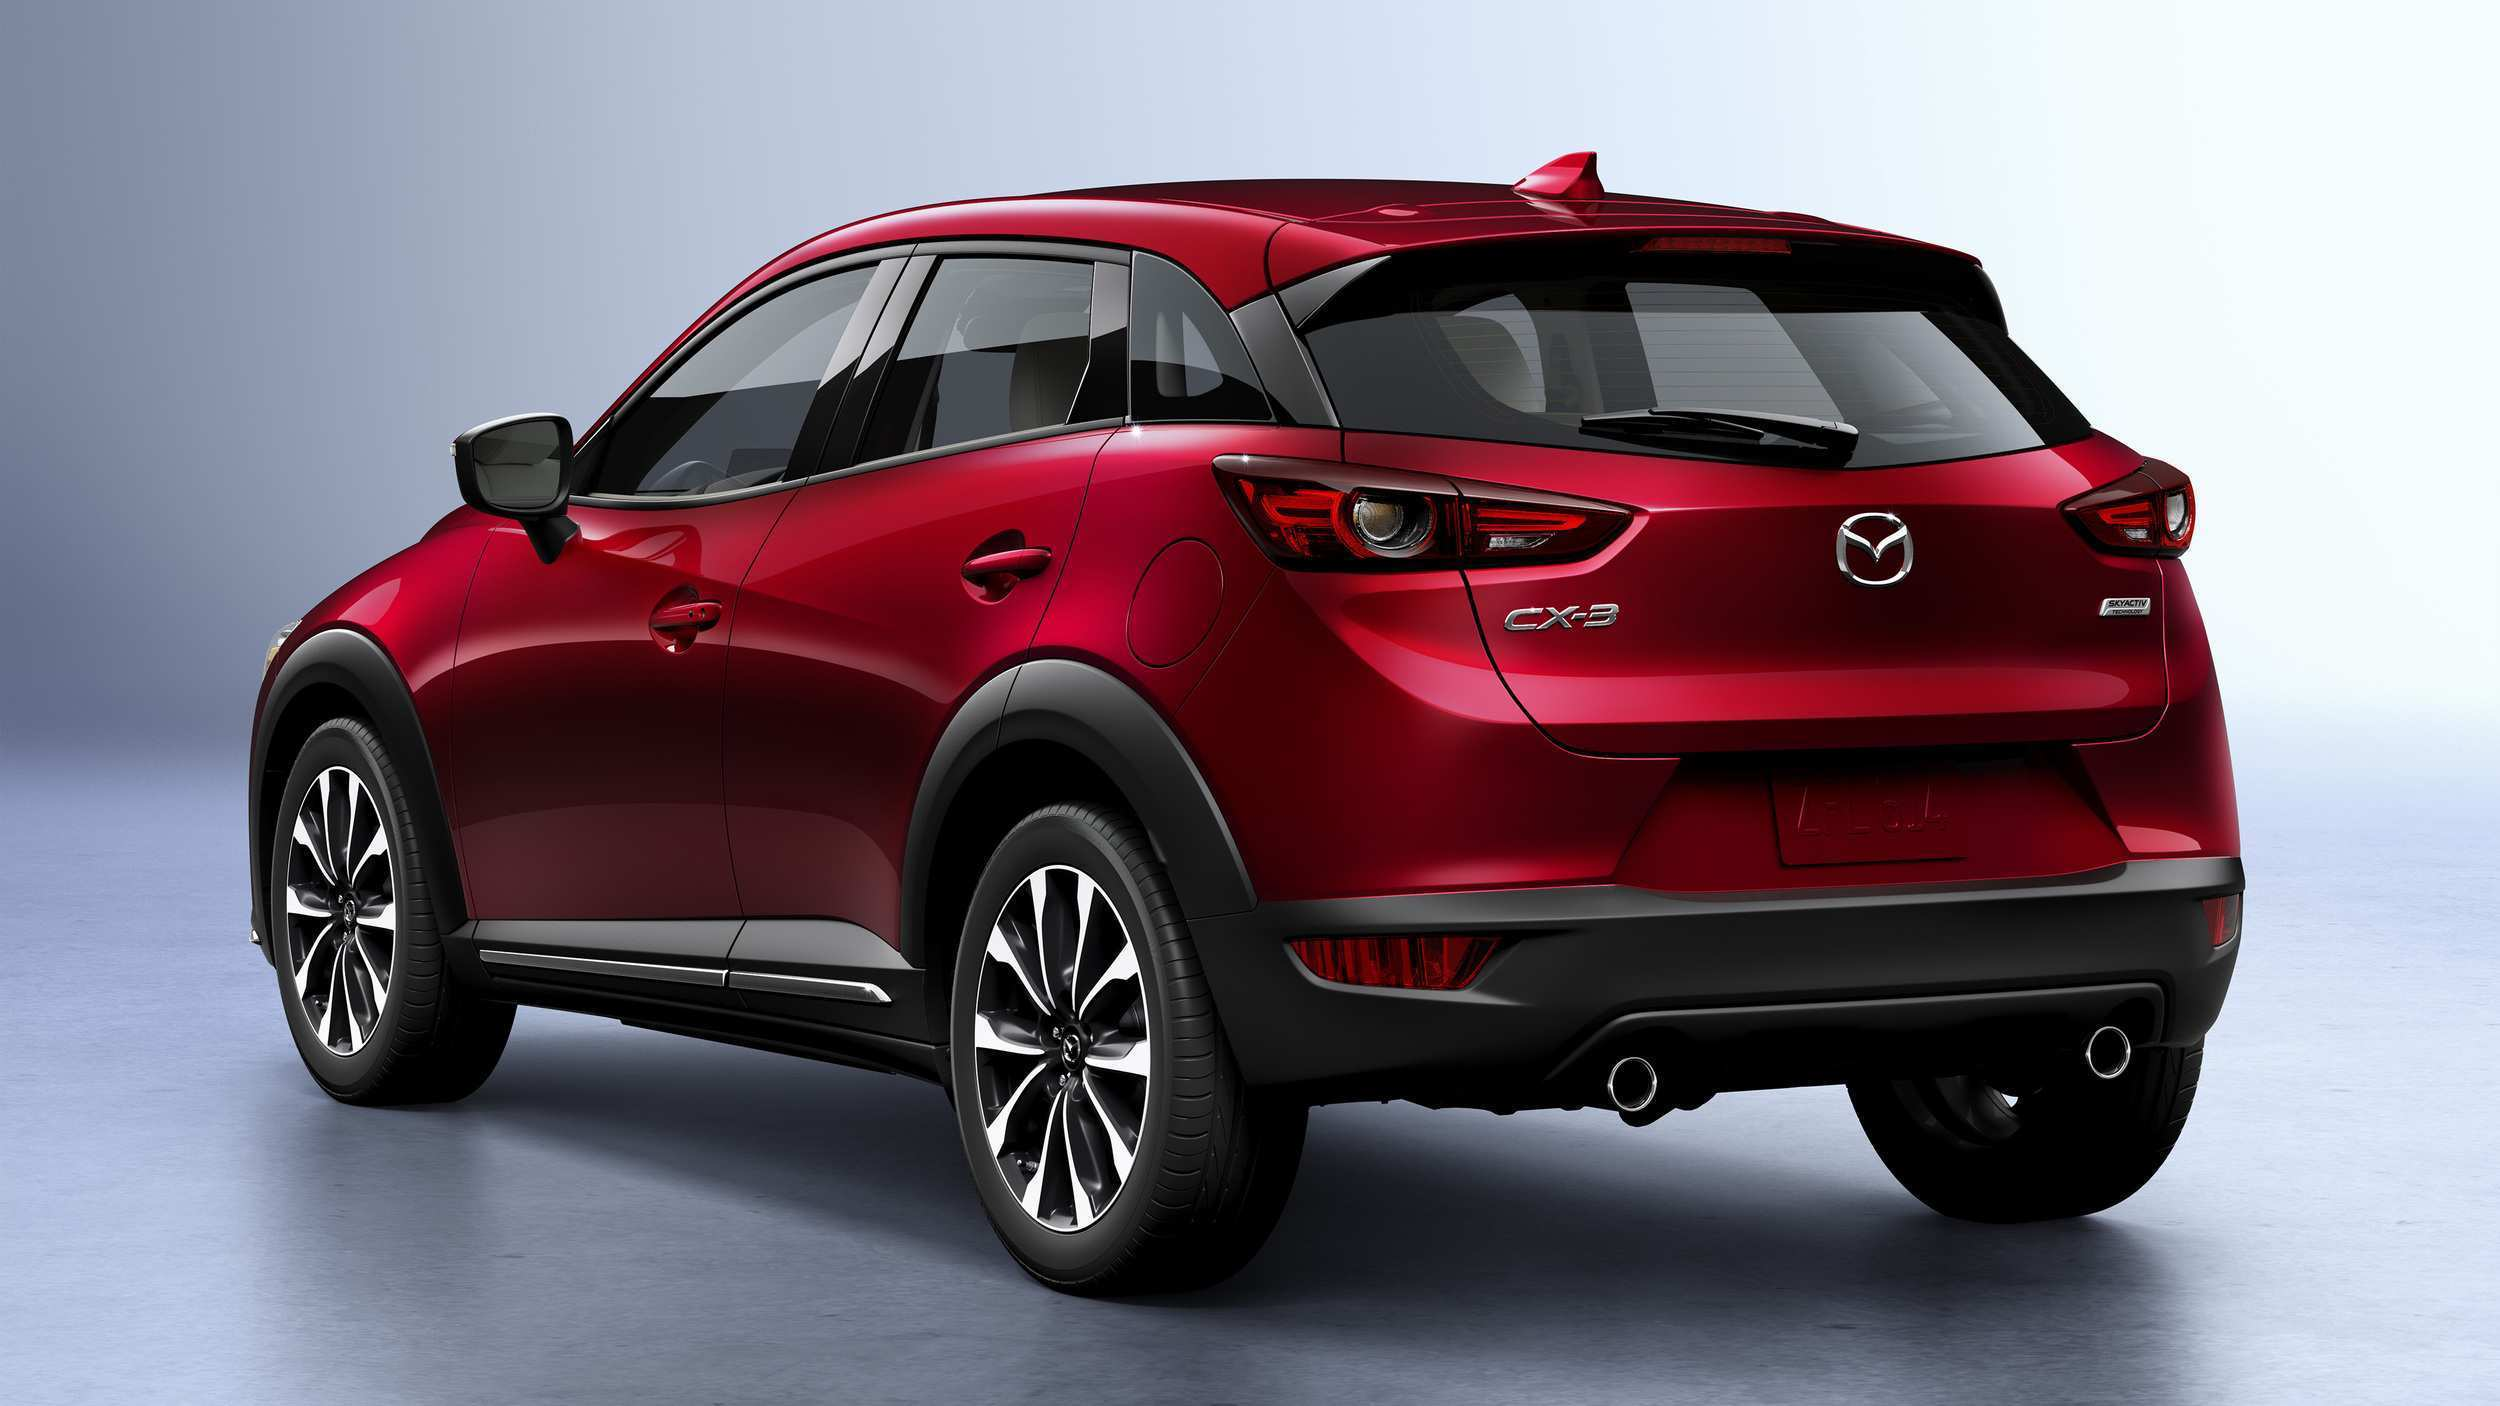 77 All New Precio Del Mazda 2019 Redesign And Concept